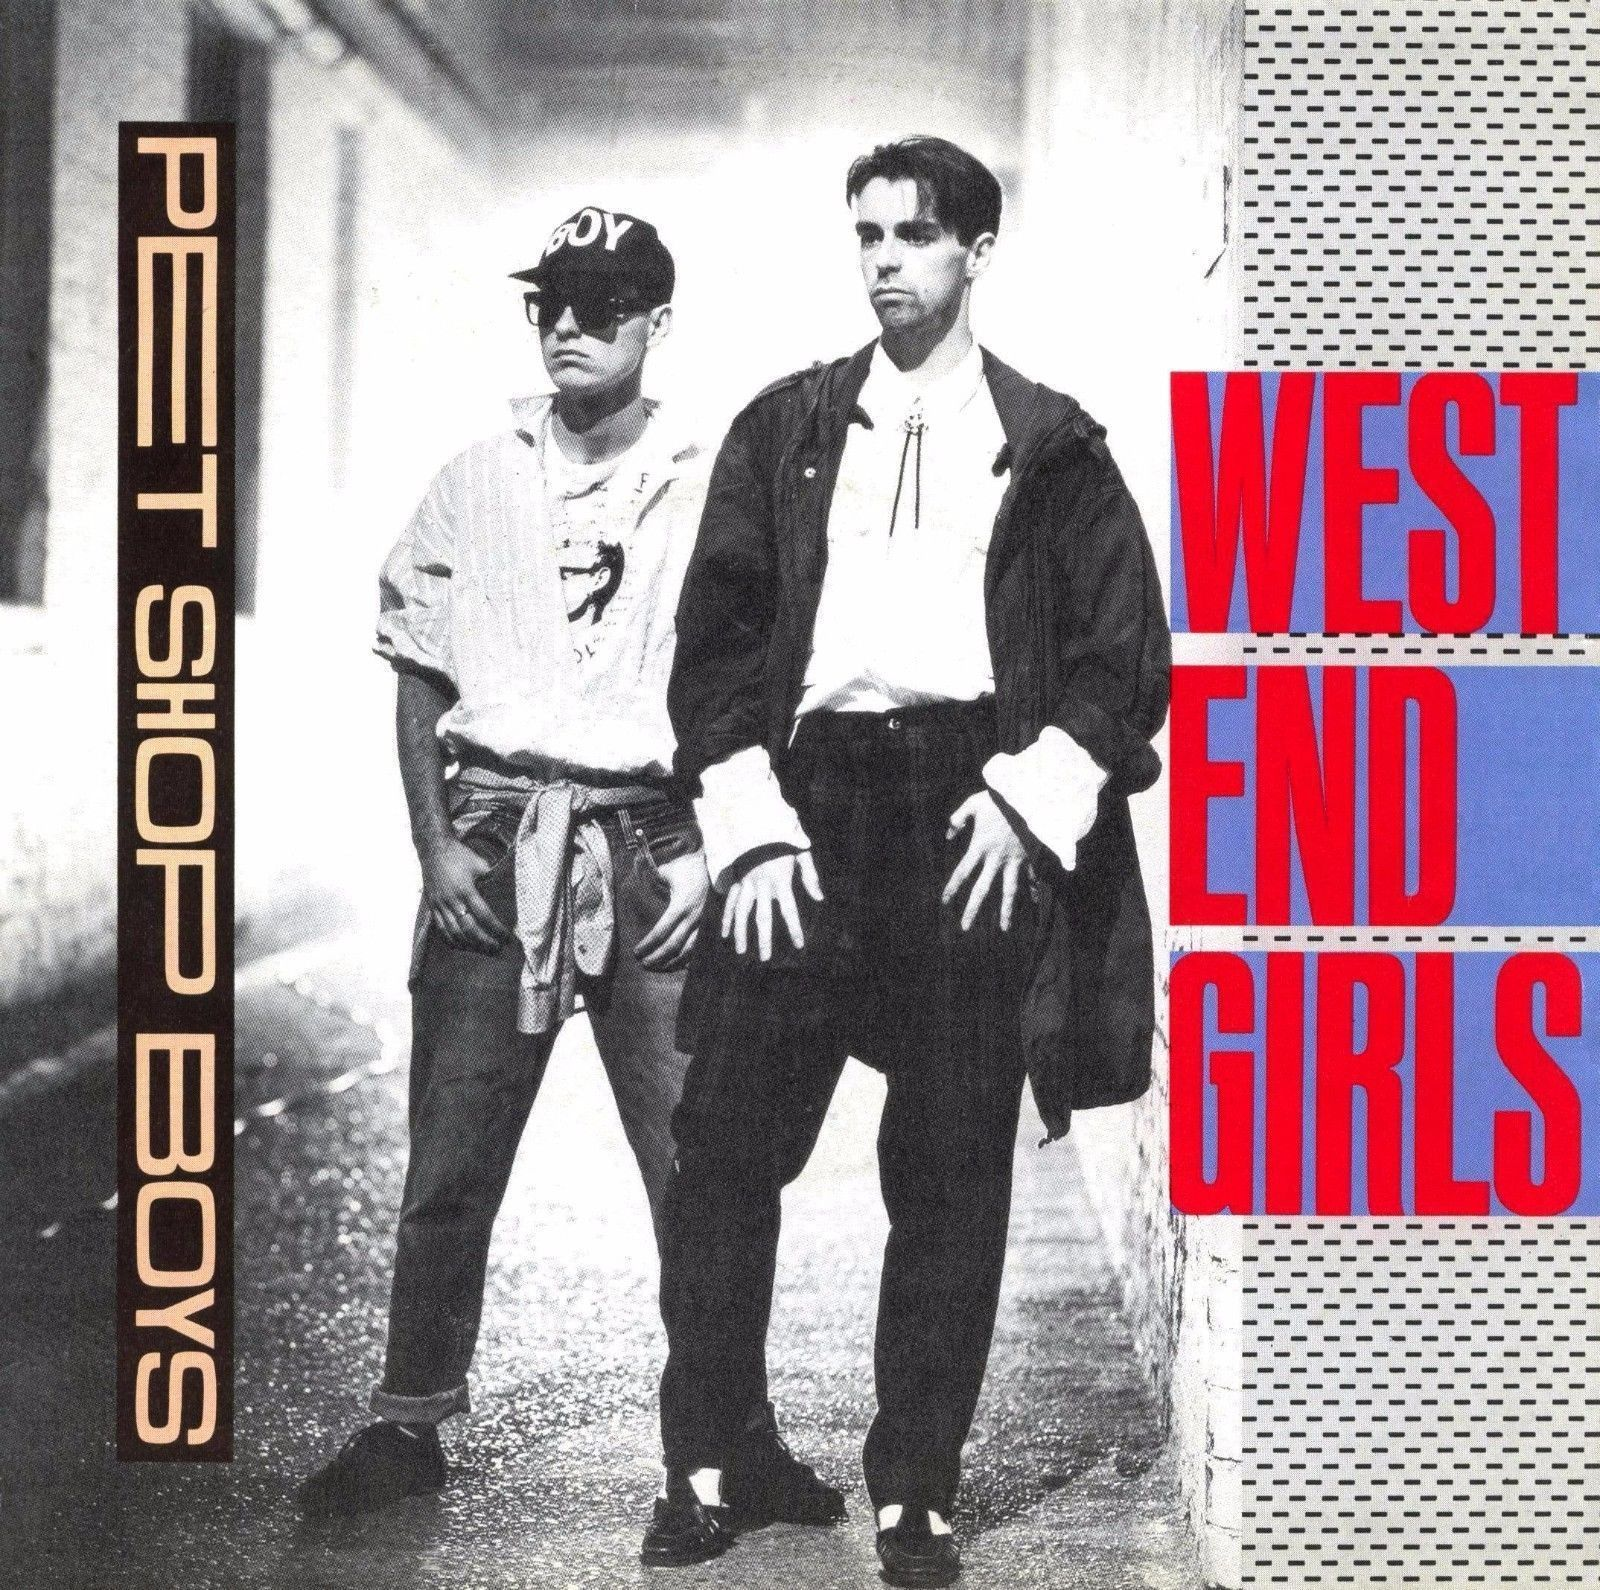 Primary image for PET SHOP BOYS (WEST END GIRLS) ALBUM COVER POSTER 24 X 24 POSTER